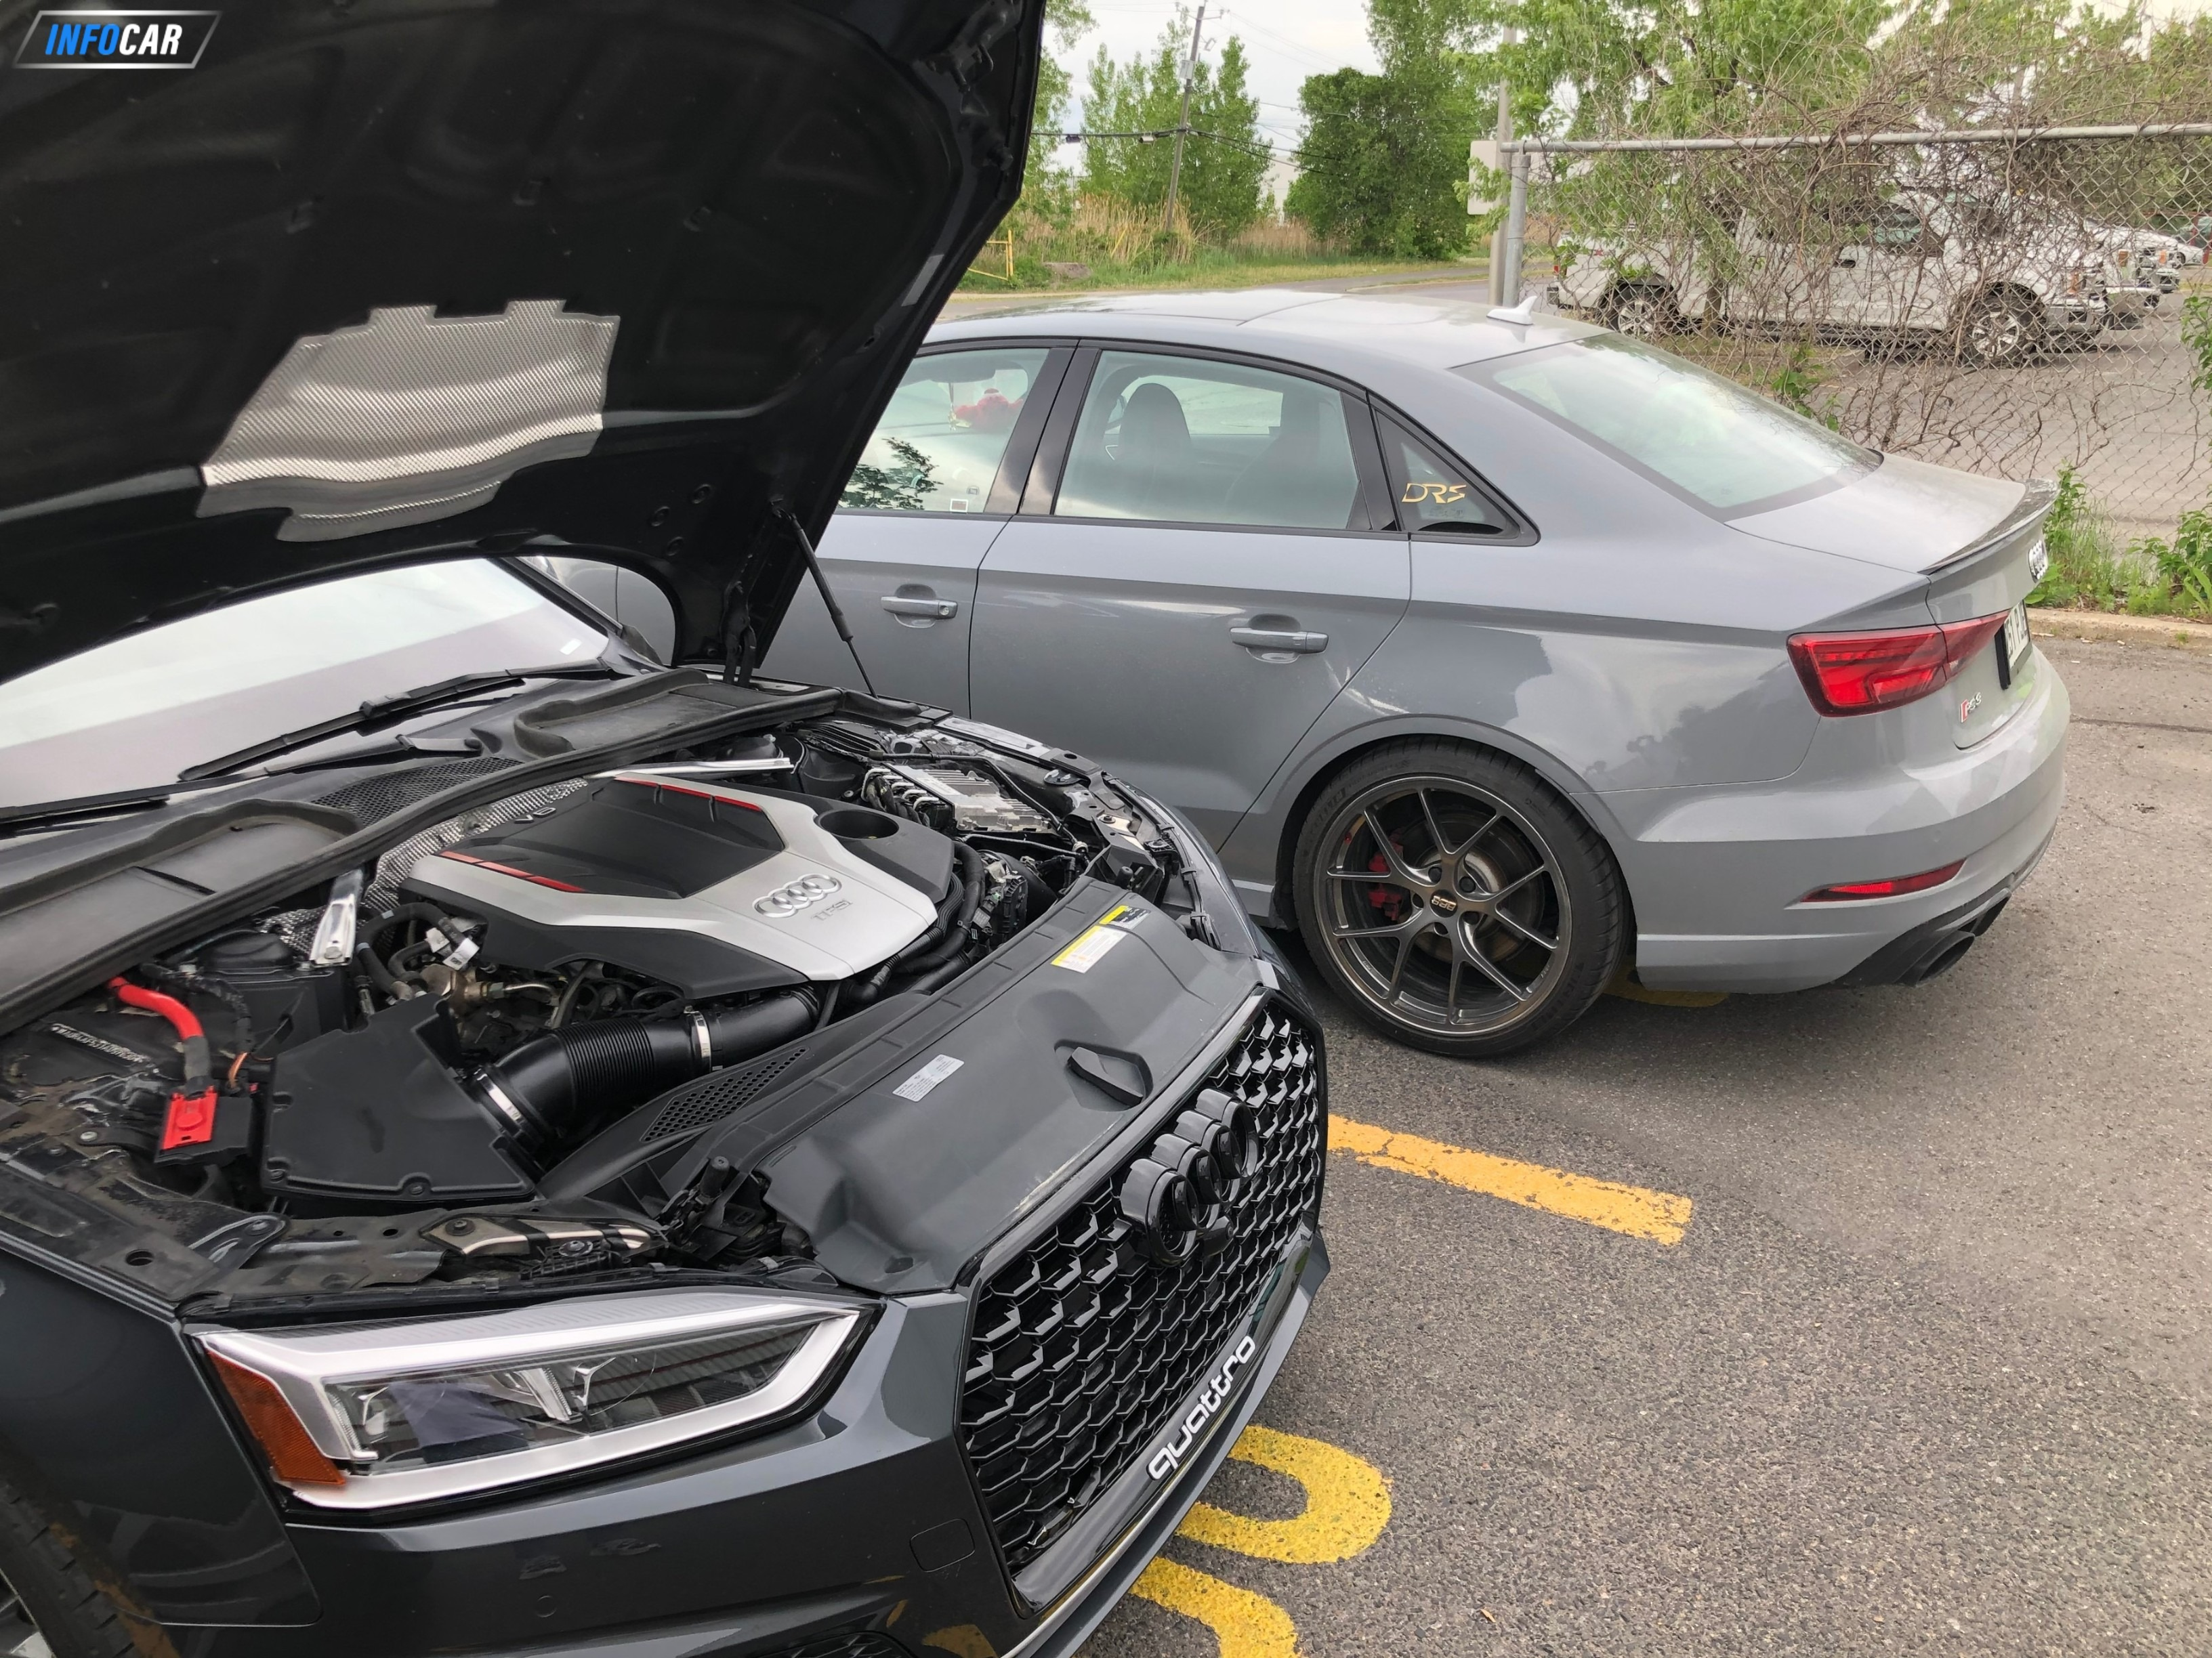 2018 Audi S5 AUDI S5 COUPE - INFOCAR - Toronto's Most Comprehensive New and Used Auto Trading Platform